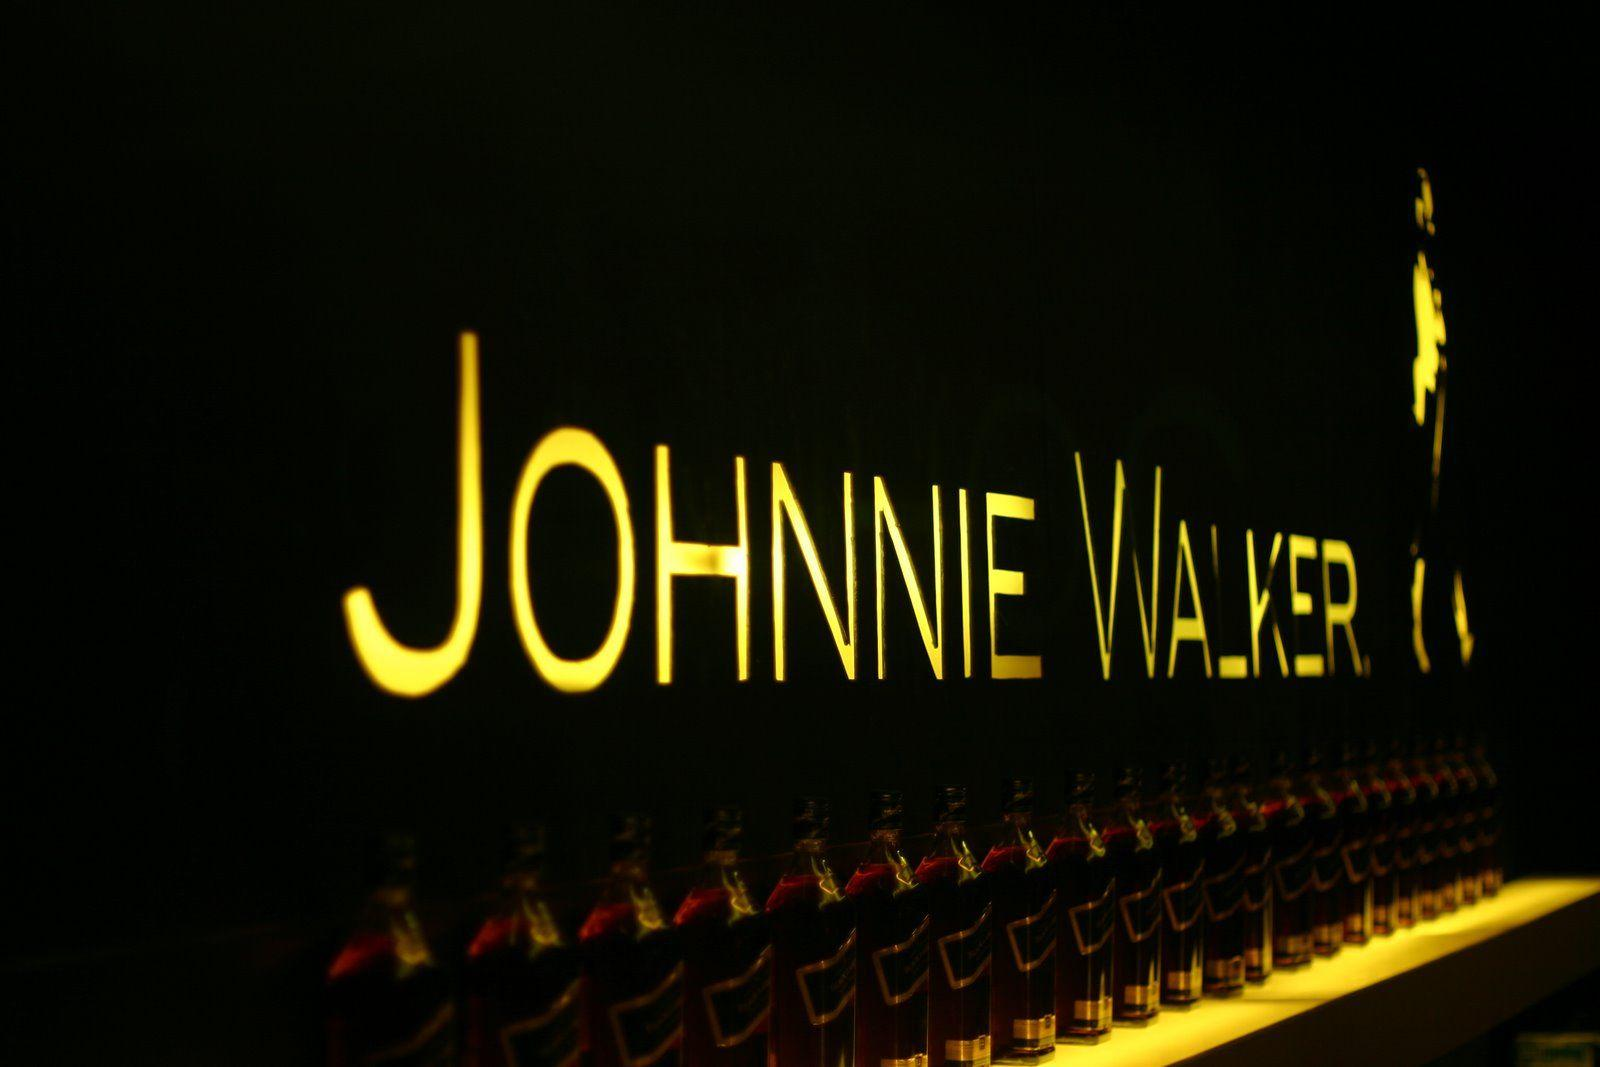 Johnny Walker Wallpaper - Fine HD Wallpapers and Photos Free ...